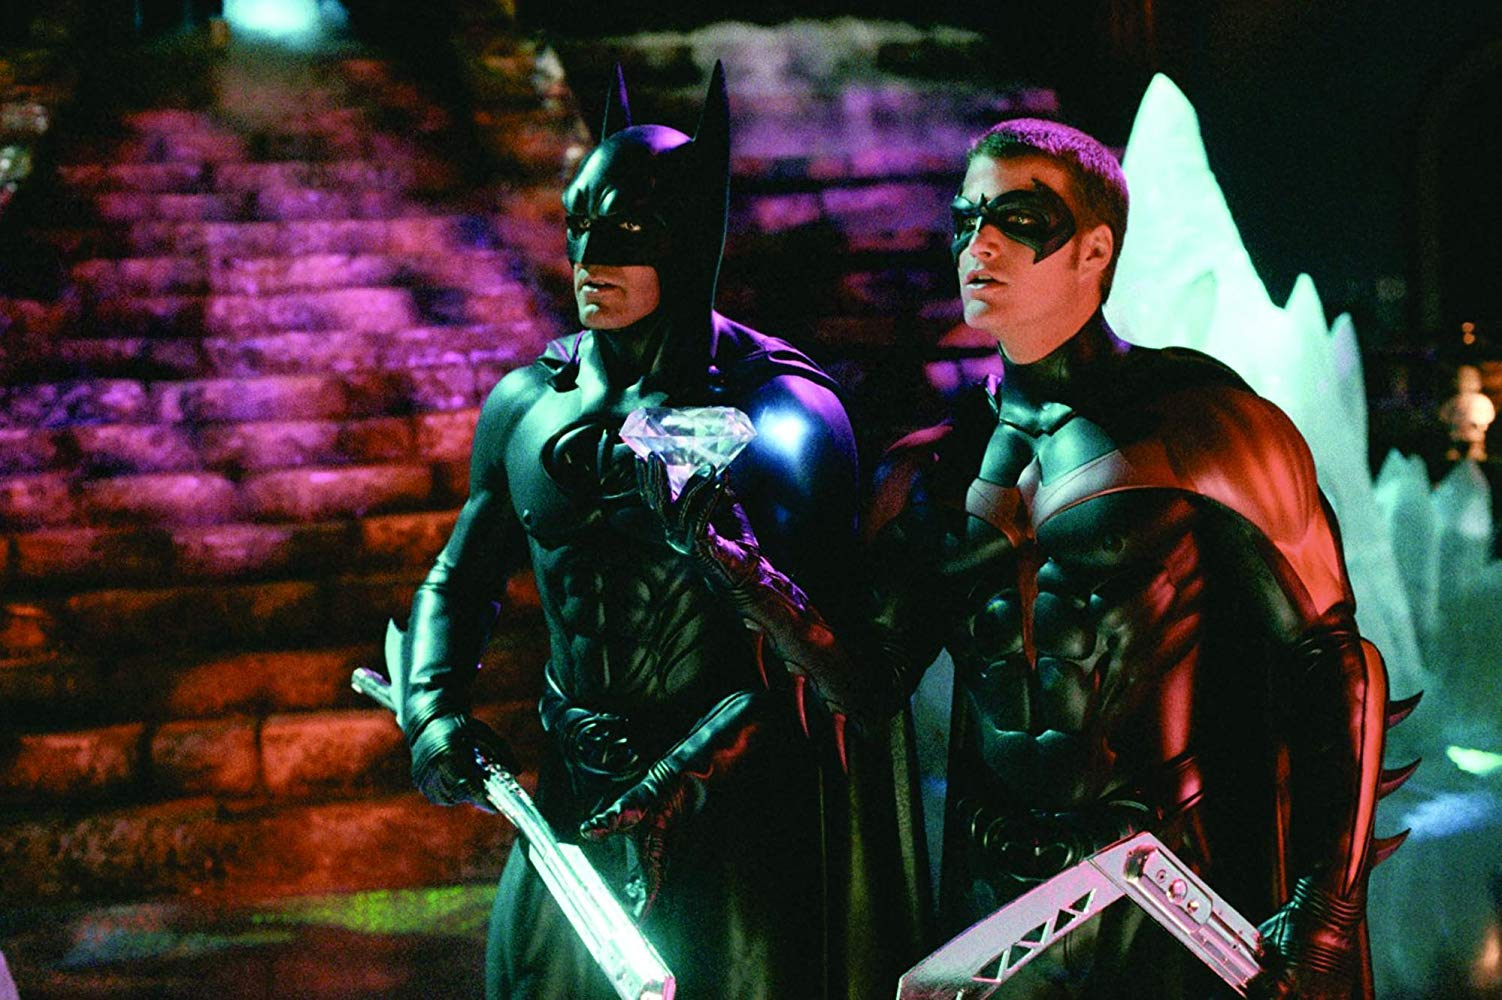 Batman (George Clooney) and Robin (Chris O'Donnell) on ice skates in Batman & Robin (1997)